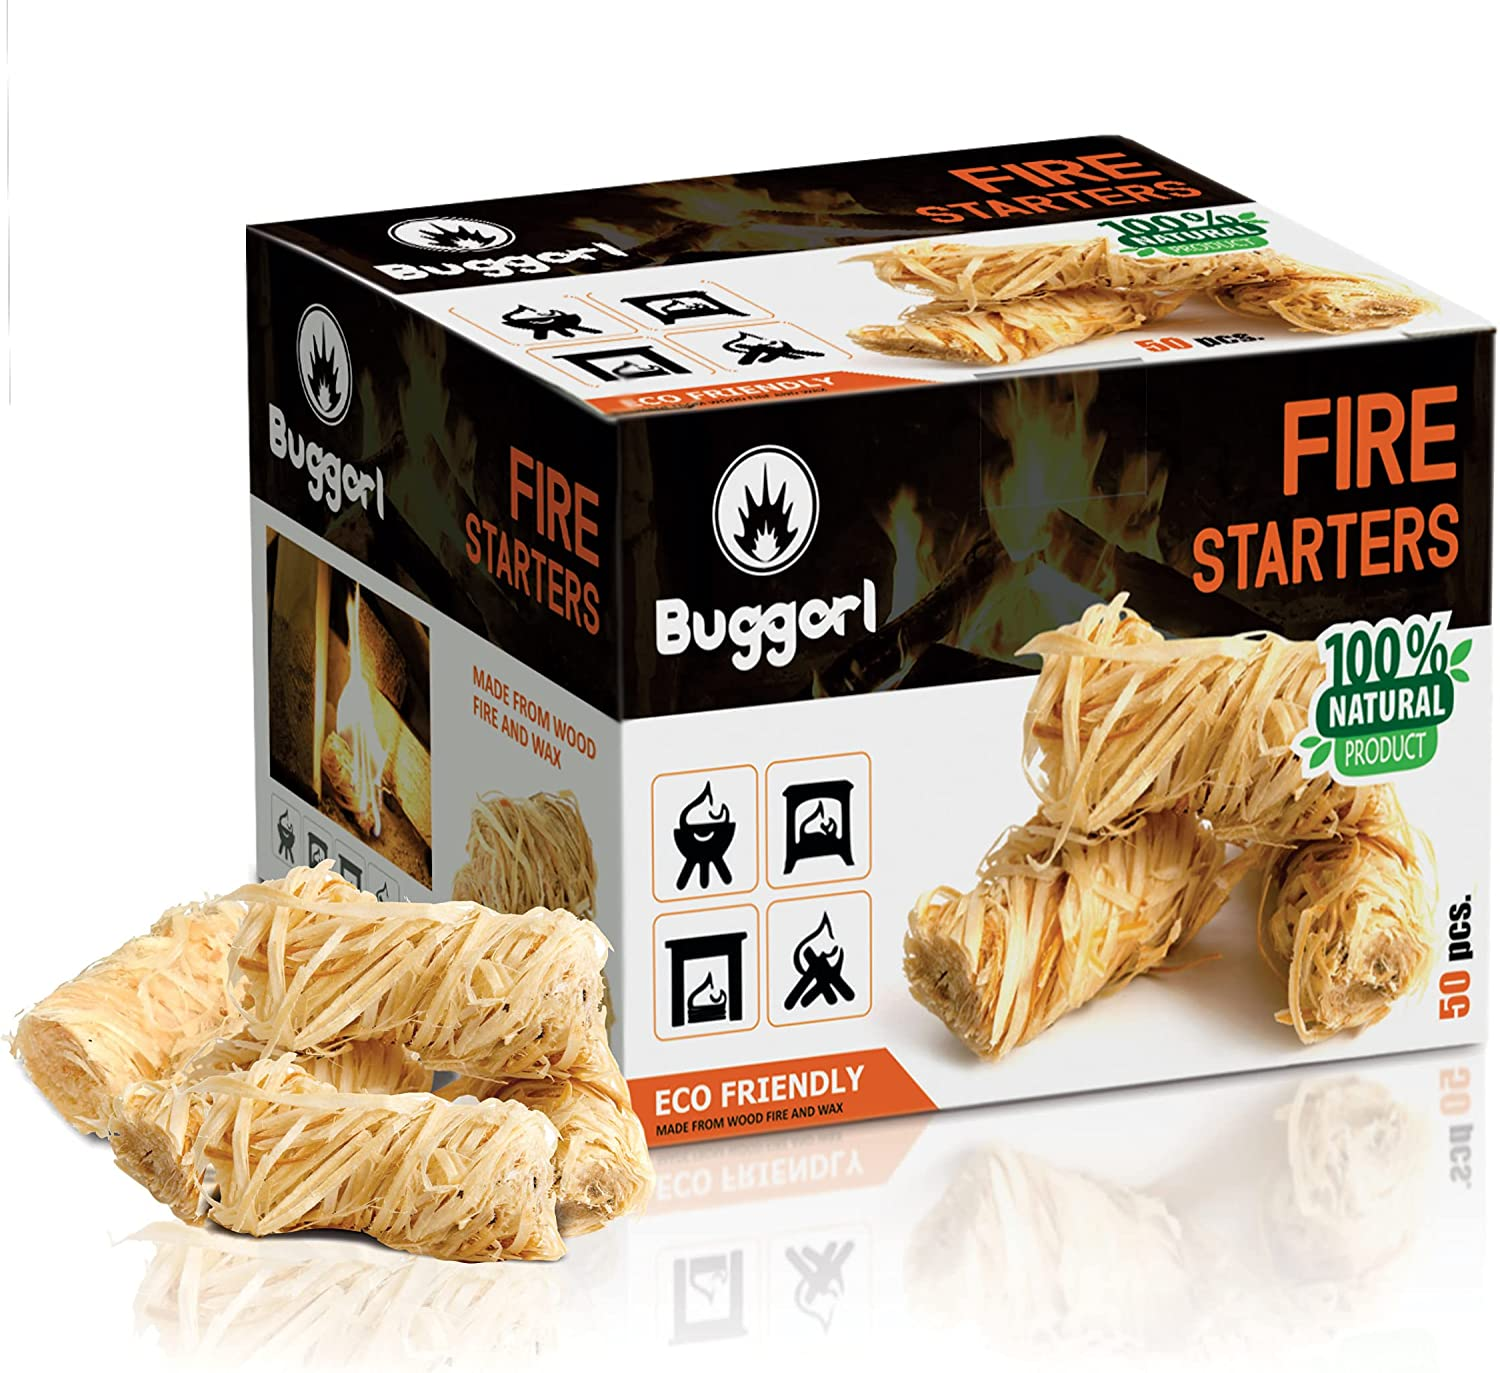 Buggorl Natural Fire Starters - Firestarter Kit Made from Pine Wood Shavings, Food-Grade Wax for Fireplace, Wood Stove, Food Smoker, Charcoal Grill, Chimney, Campfire - Smokeless, Odorless - Box of 50